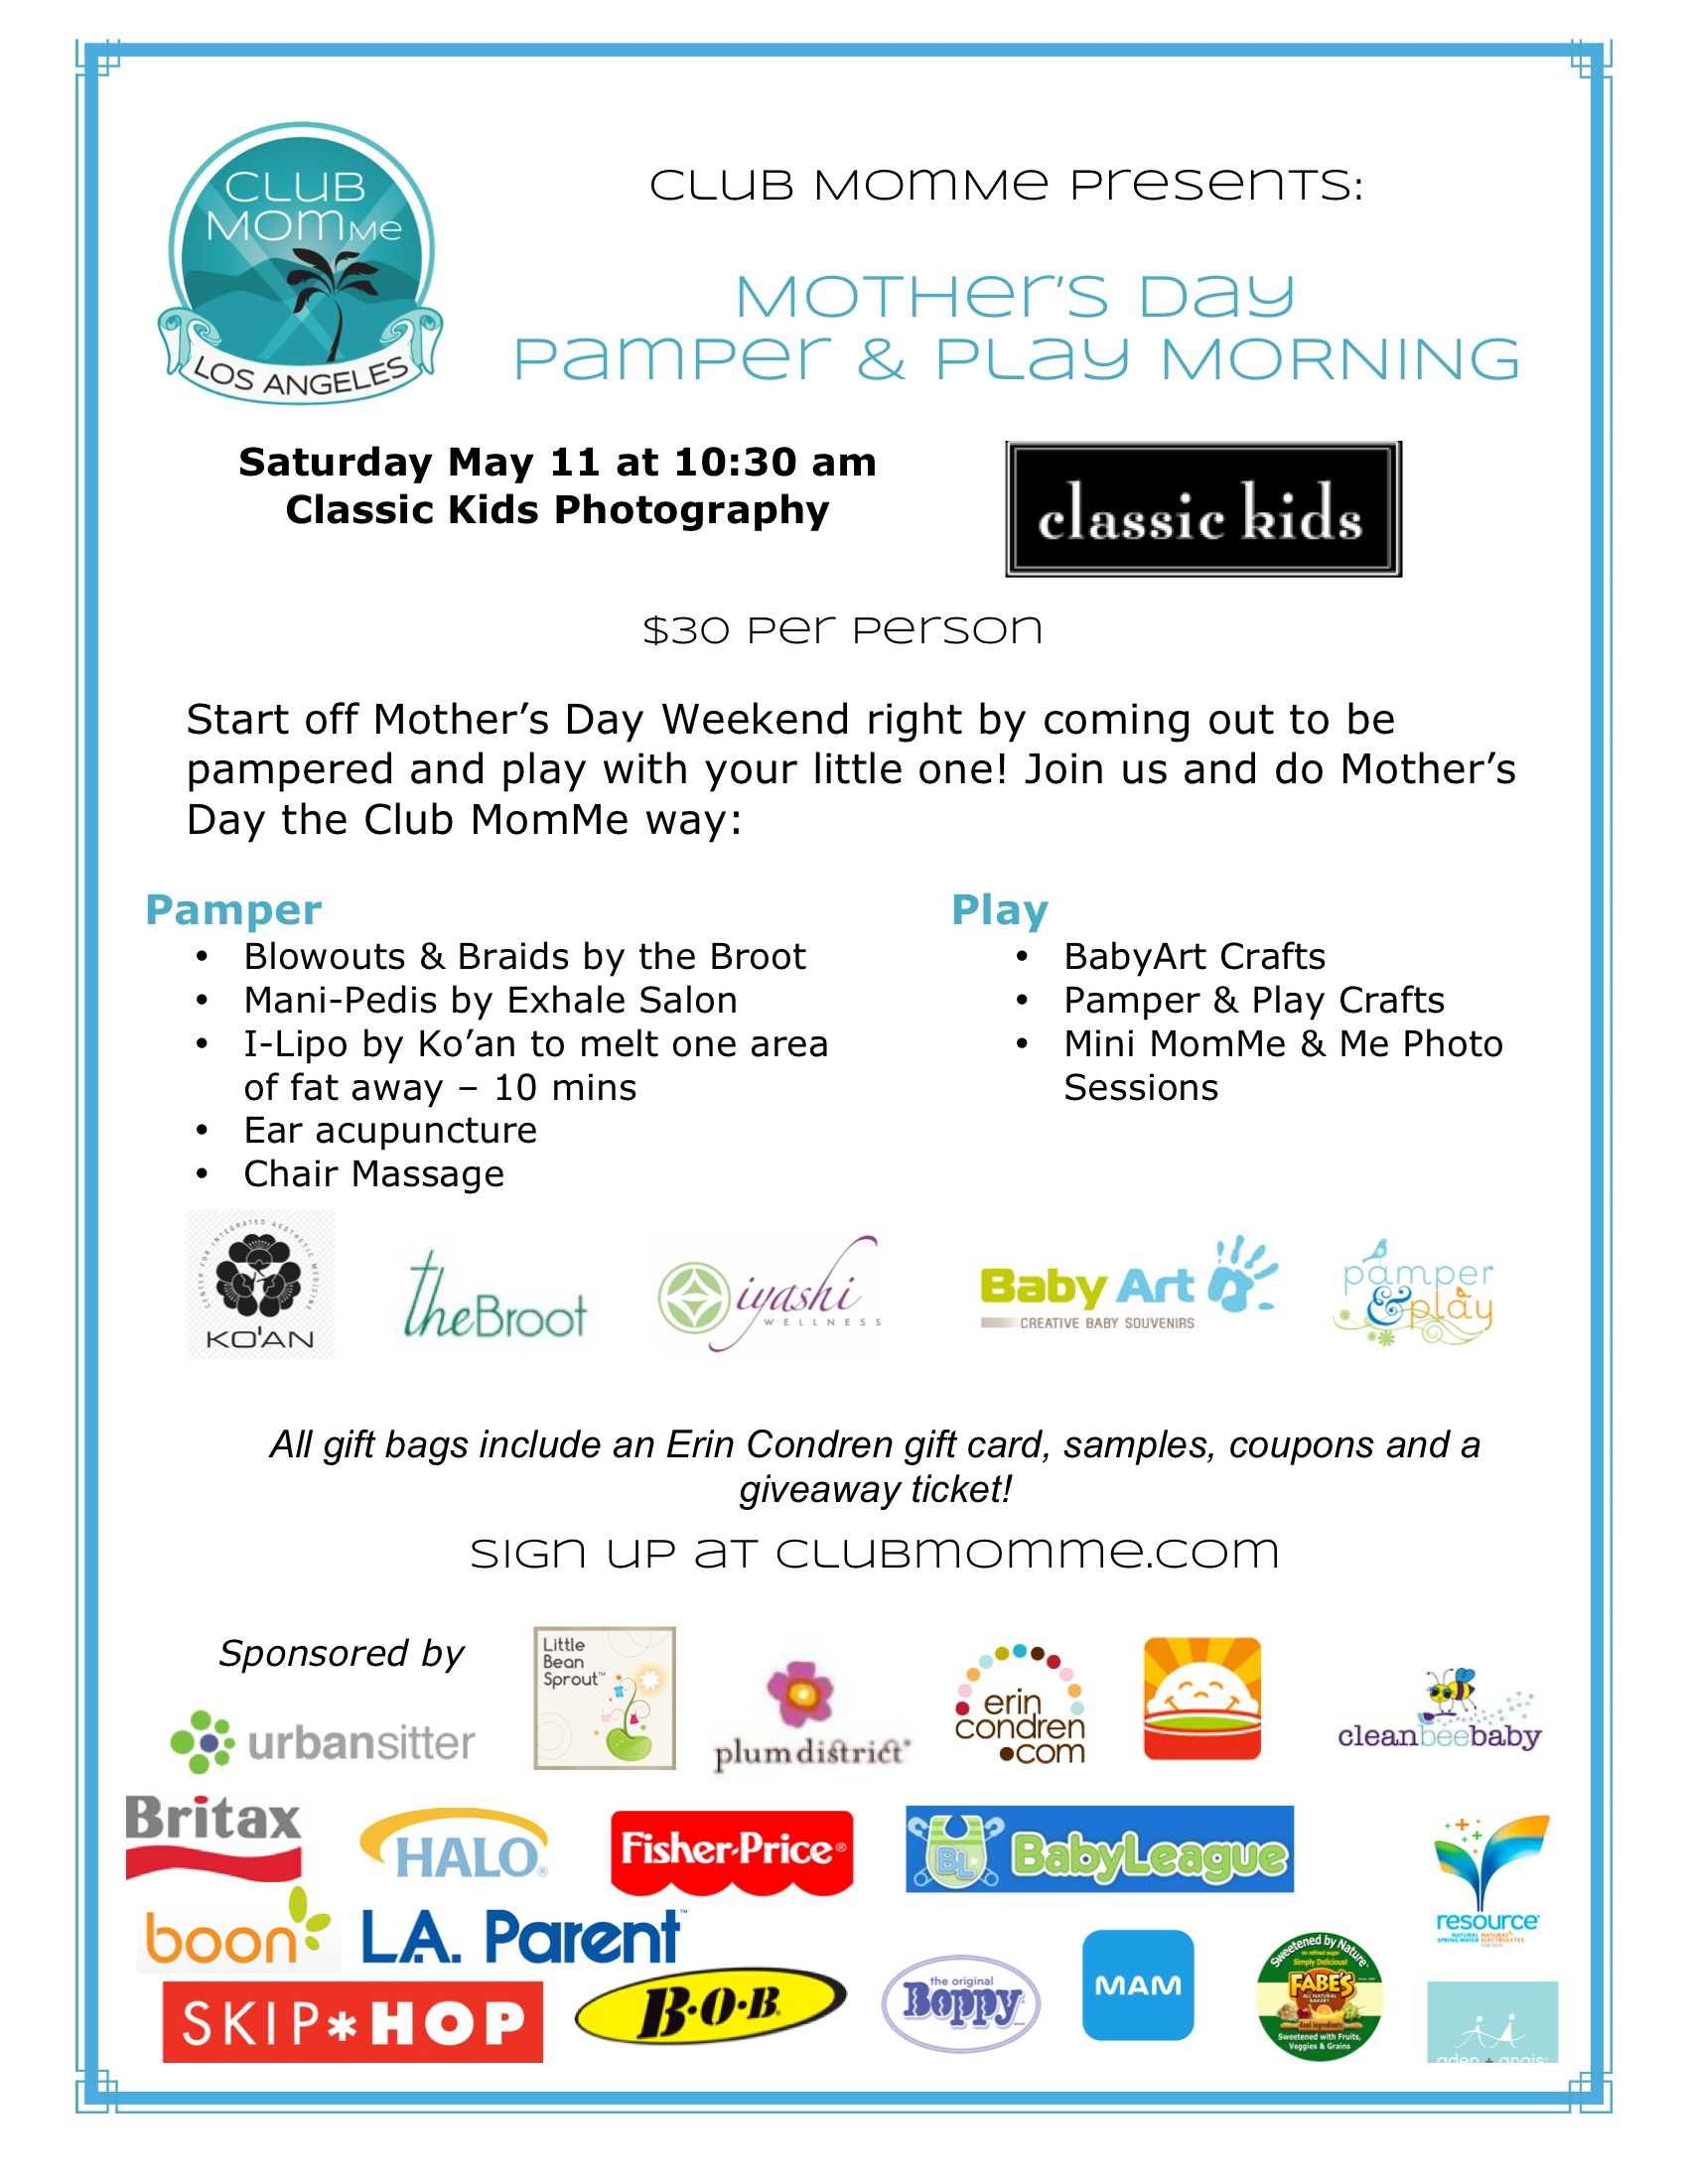 Mother's Day Club Momme 2013.jpg